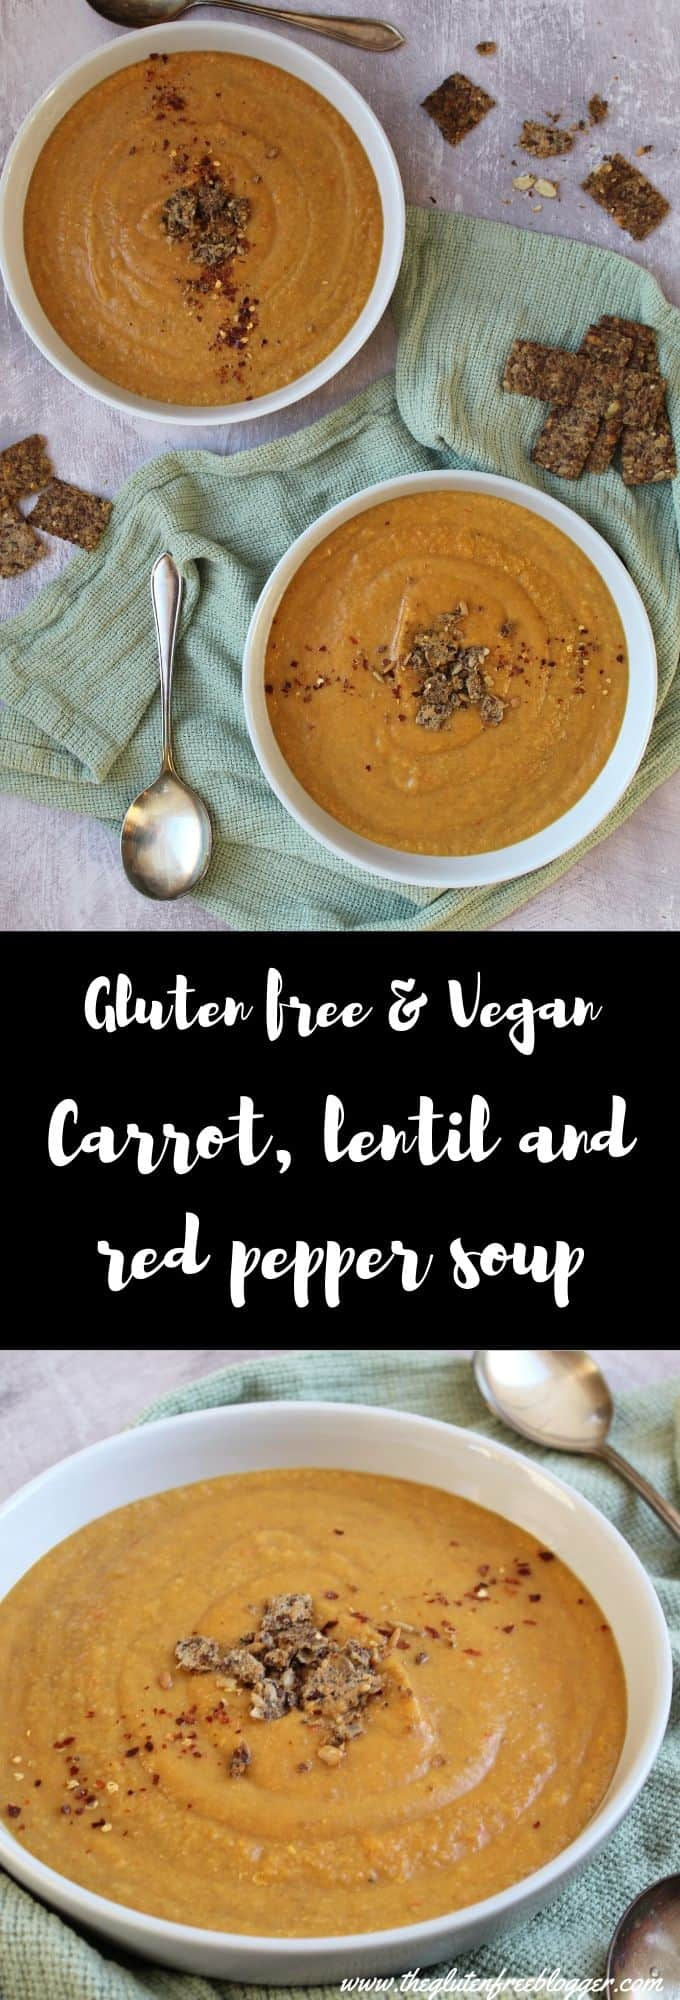 gluten free vegan carrot lentil and red pepper soup dairy free vegetarian lunch ideas